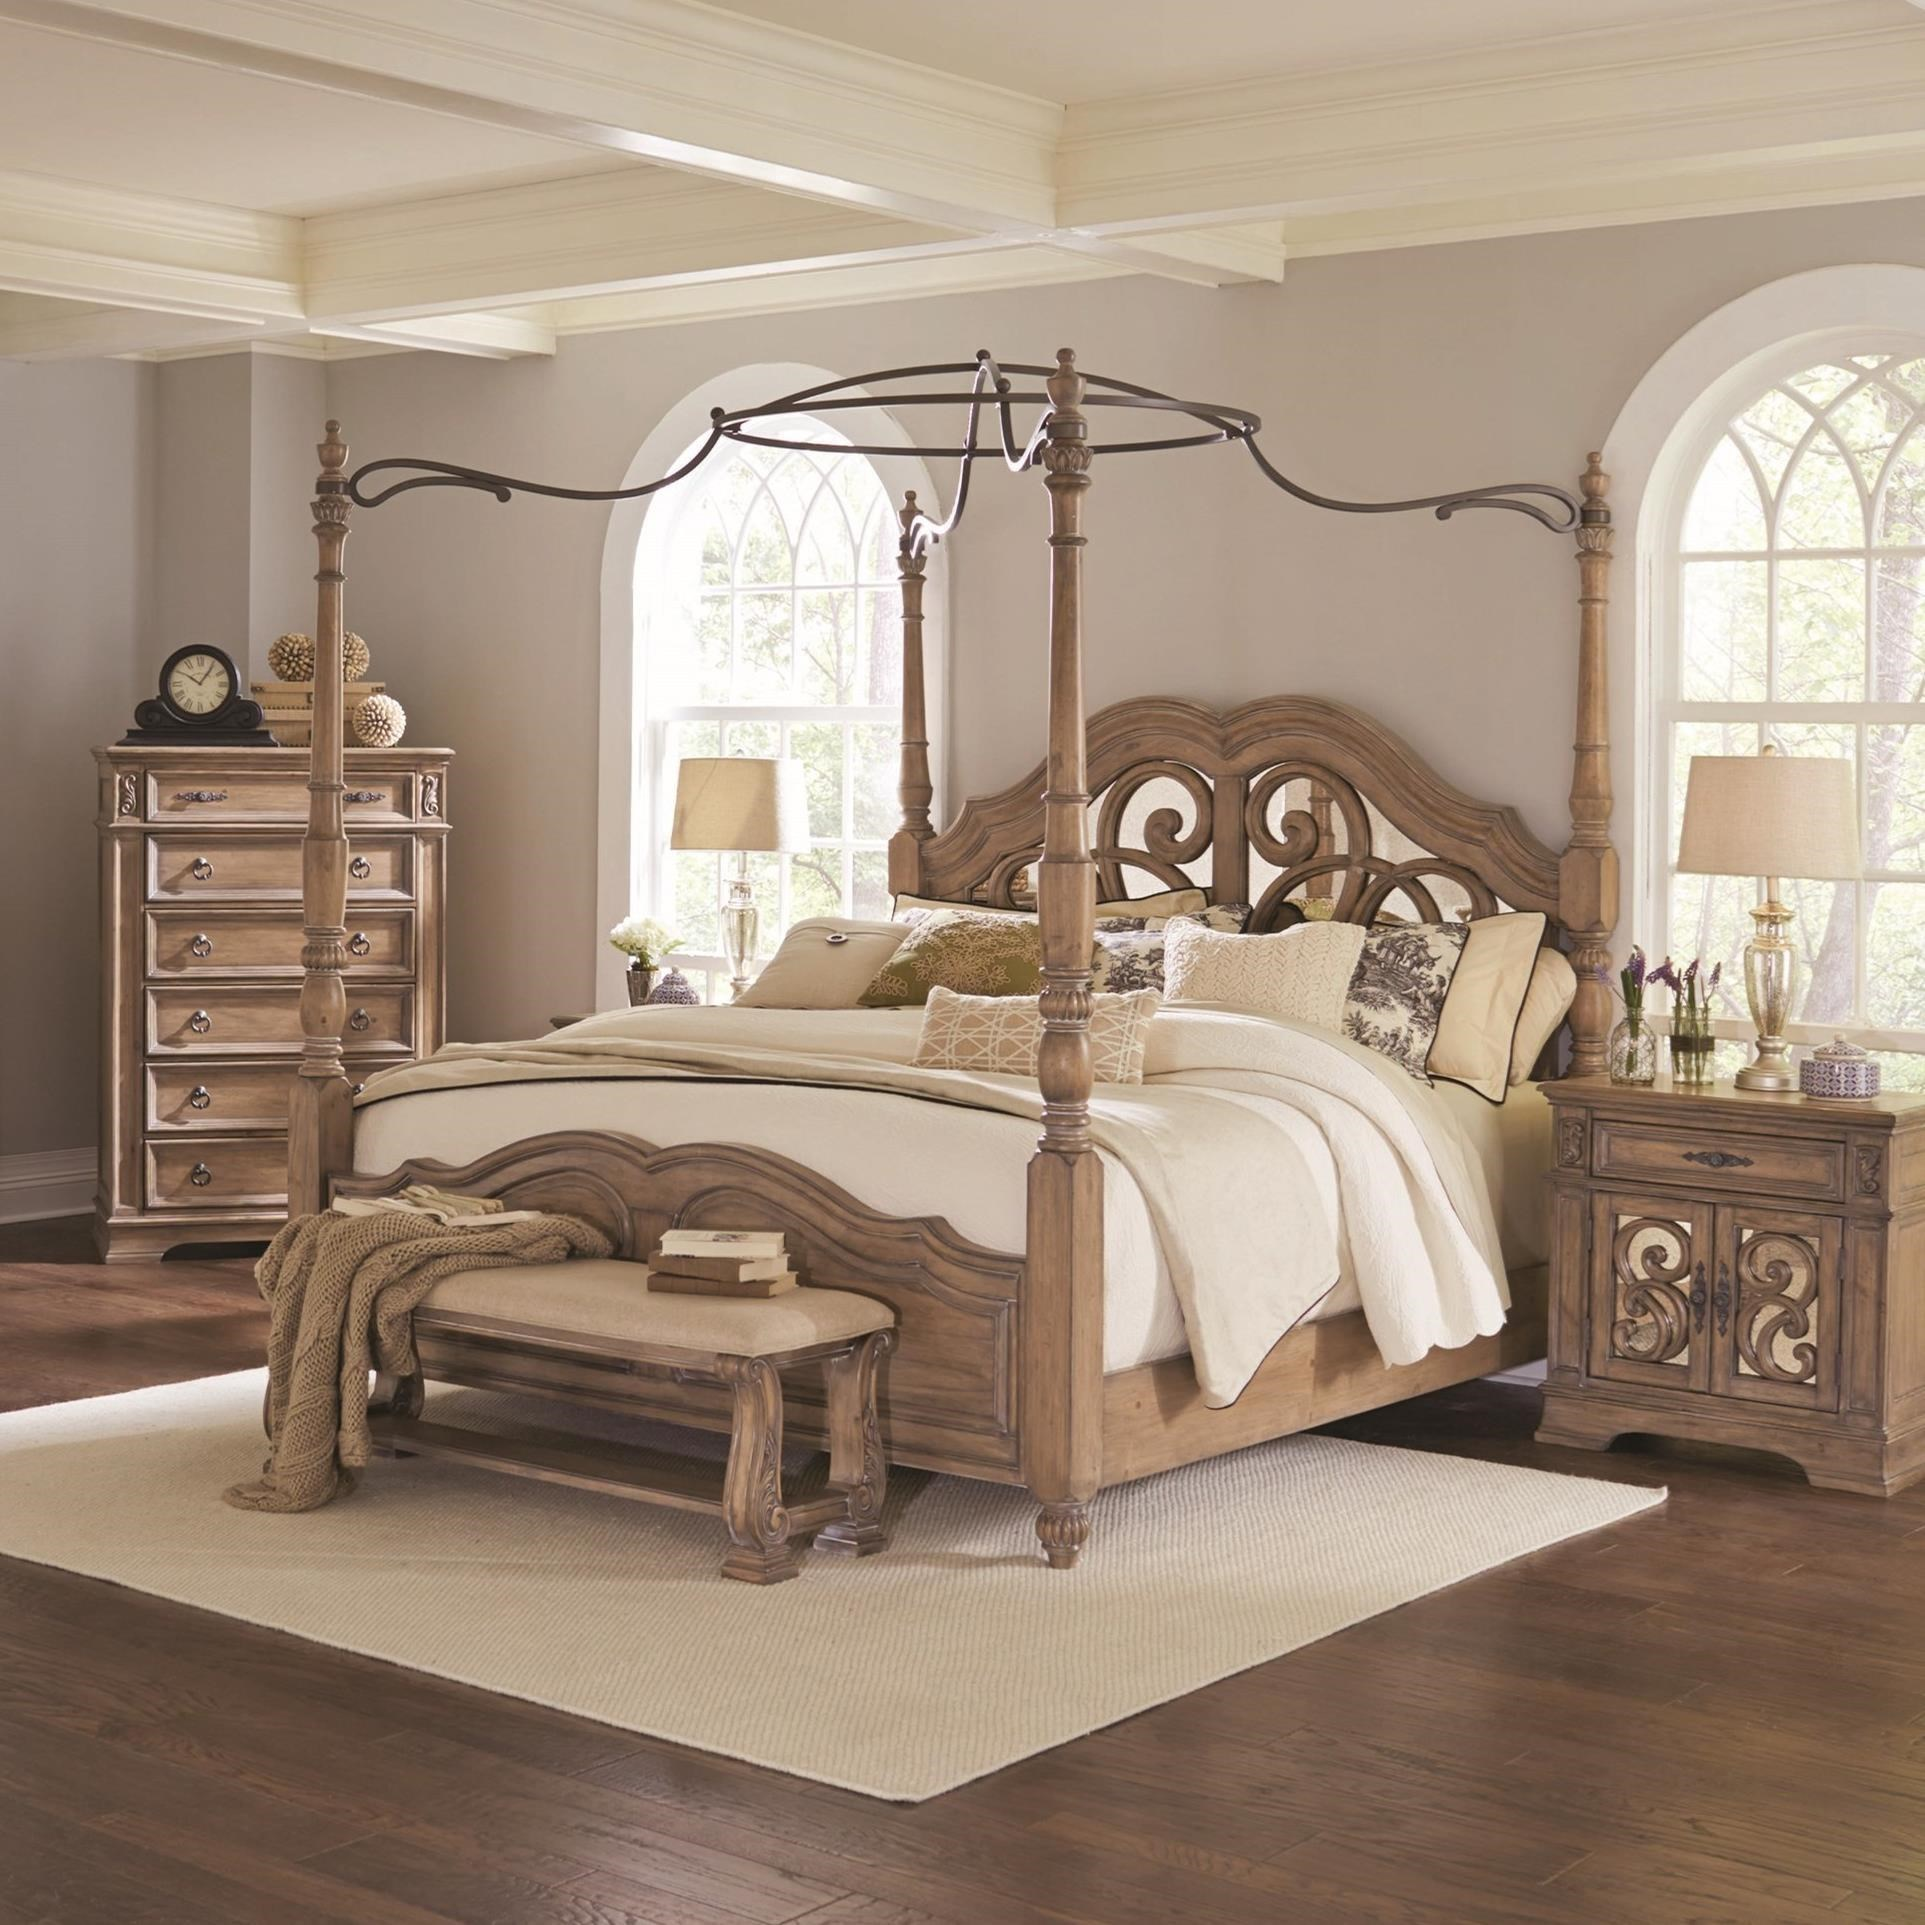 King Canopy Bed with Mirror Back Headboard by Coaster | Wolf and ...